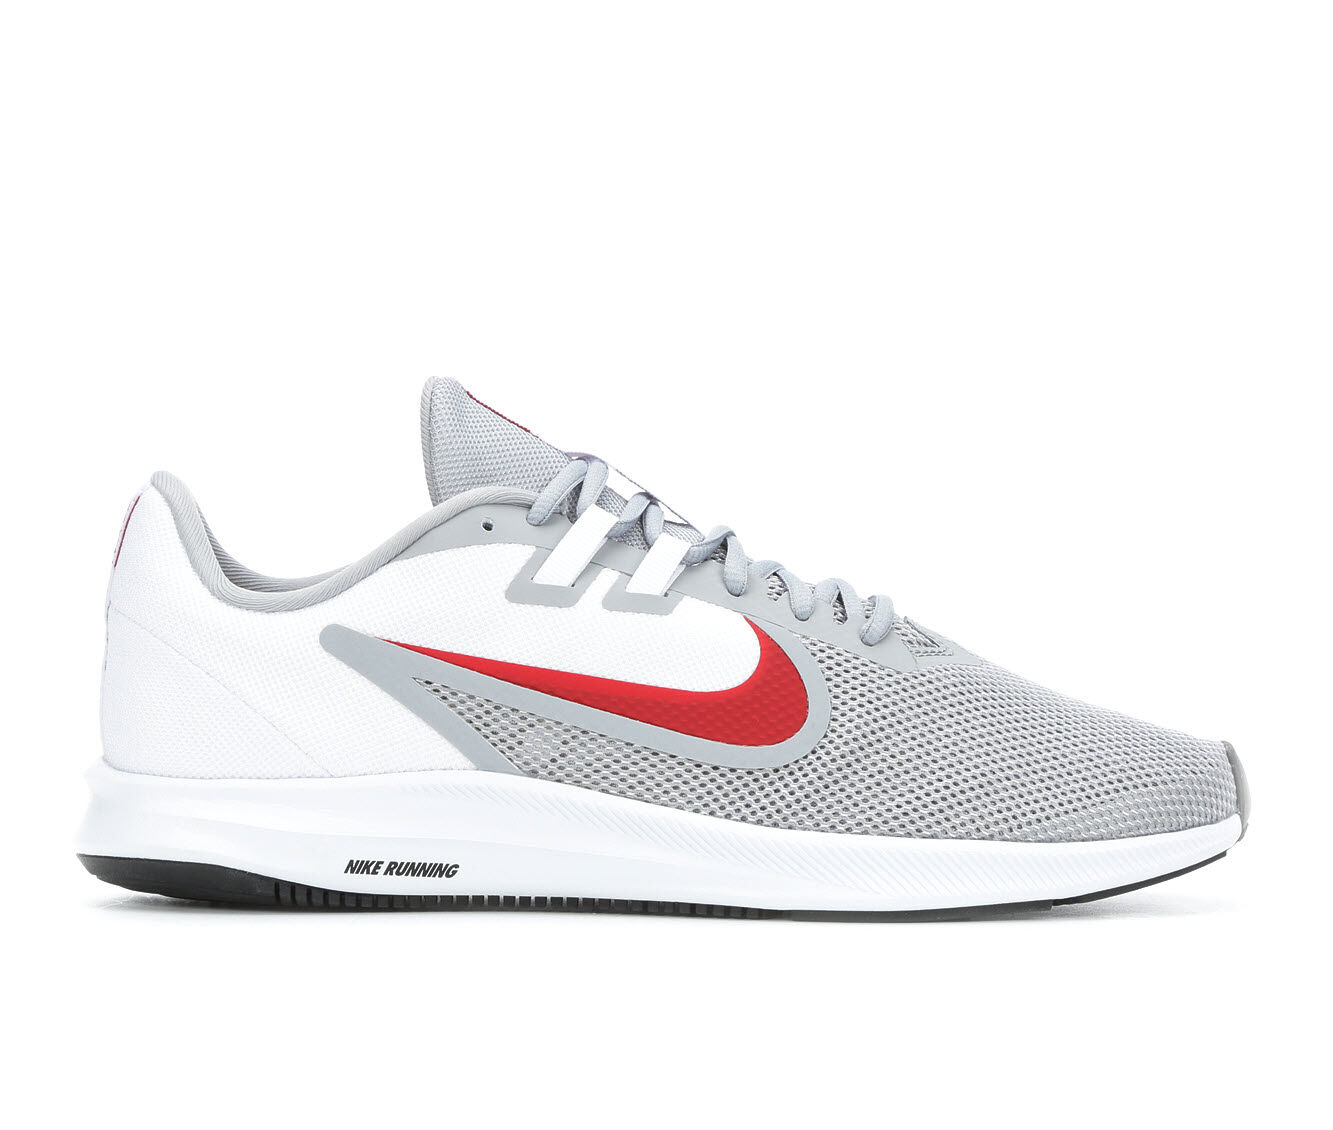 summer season Men's Nike Downshifter 9 Running Shoes Gry/Wht/Red